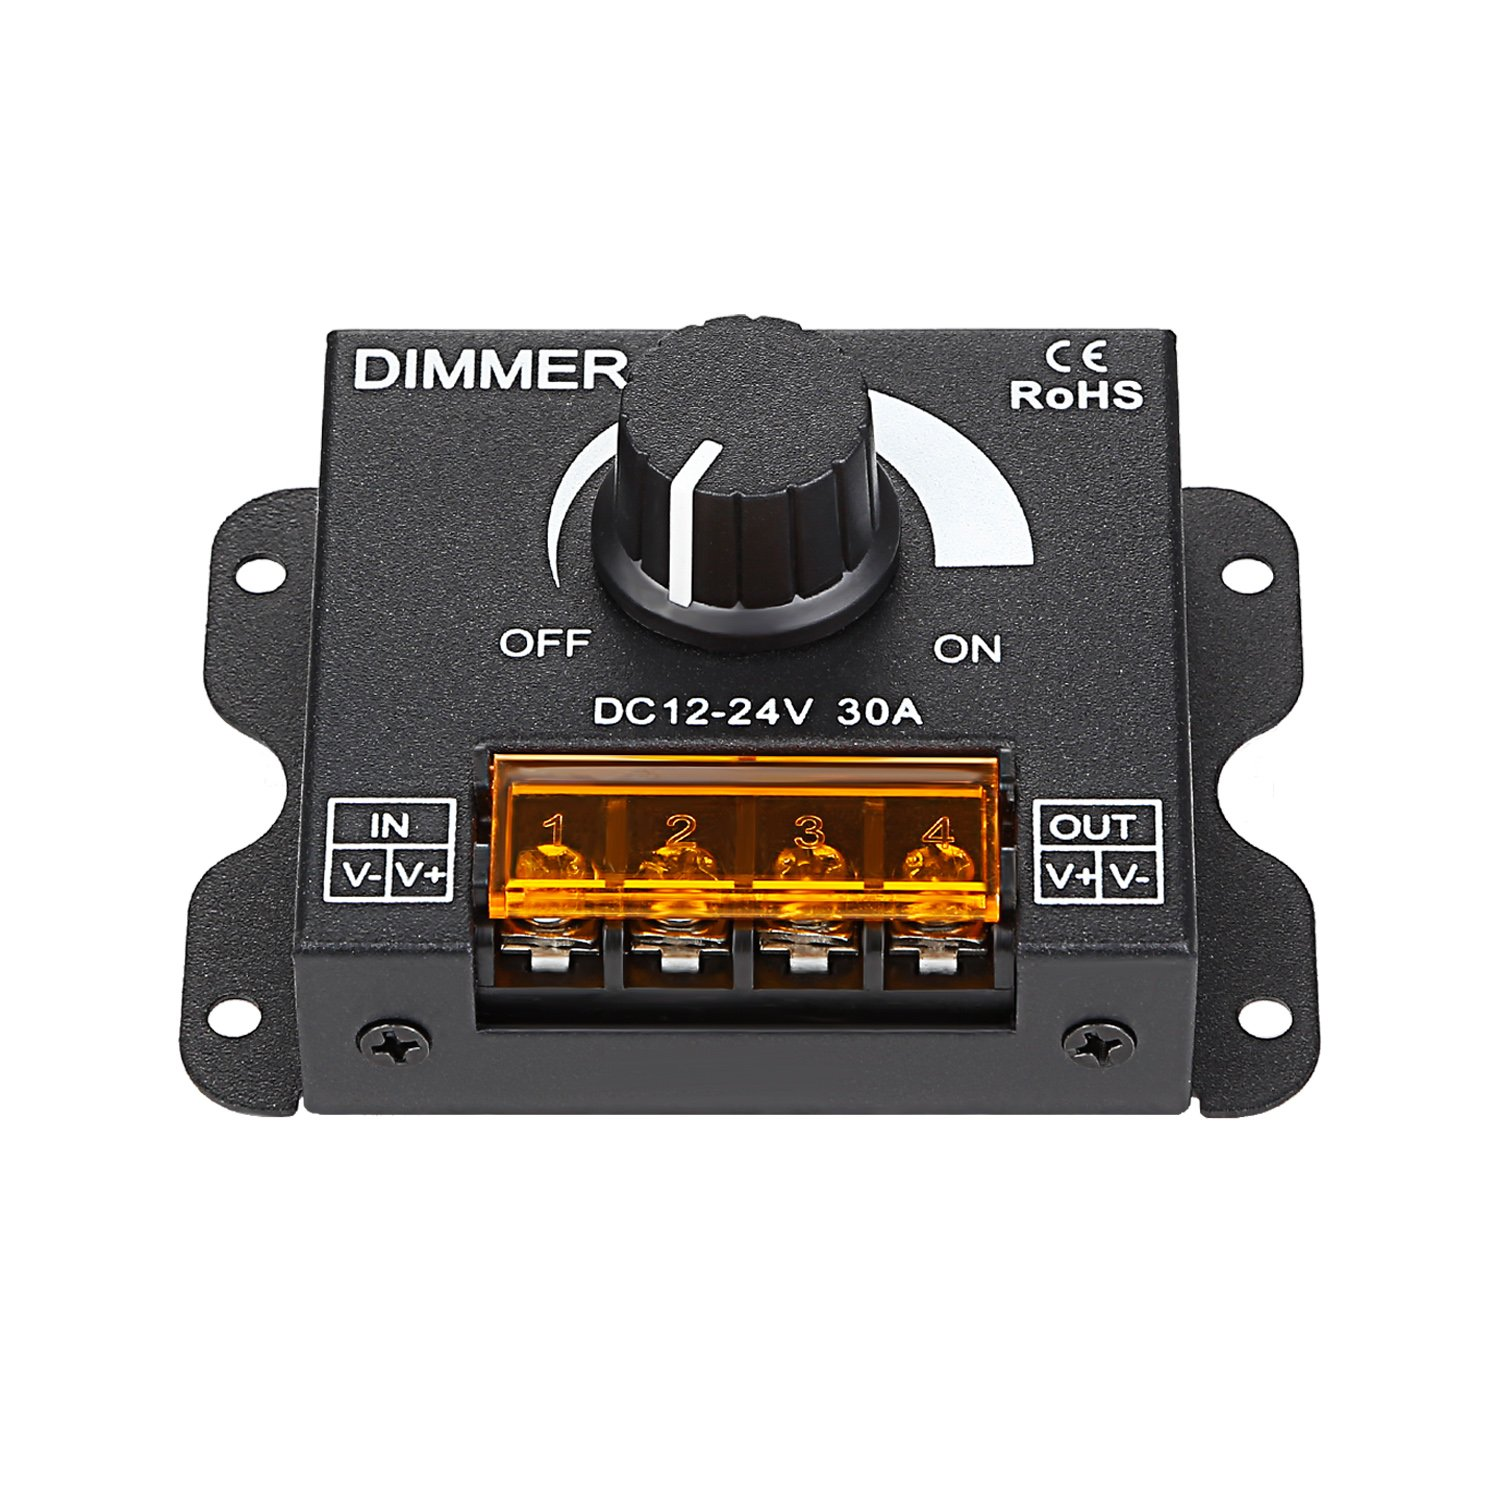 TORCHSTAR PWM Dimming Controller for LED Strip Light, DC 12V - 24V Dimmer Knob ON/OFF Switch with Aluminum Housing, Single Channel 30A 5050 3538 5630 Single Color Light Ribbon by TORCHSTAR (Image #7)